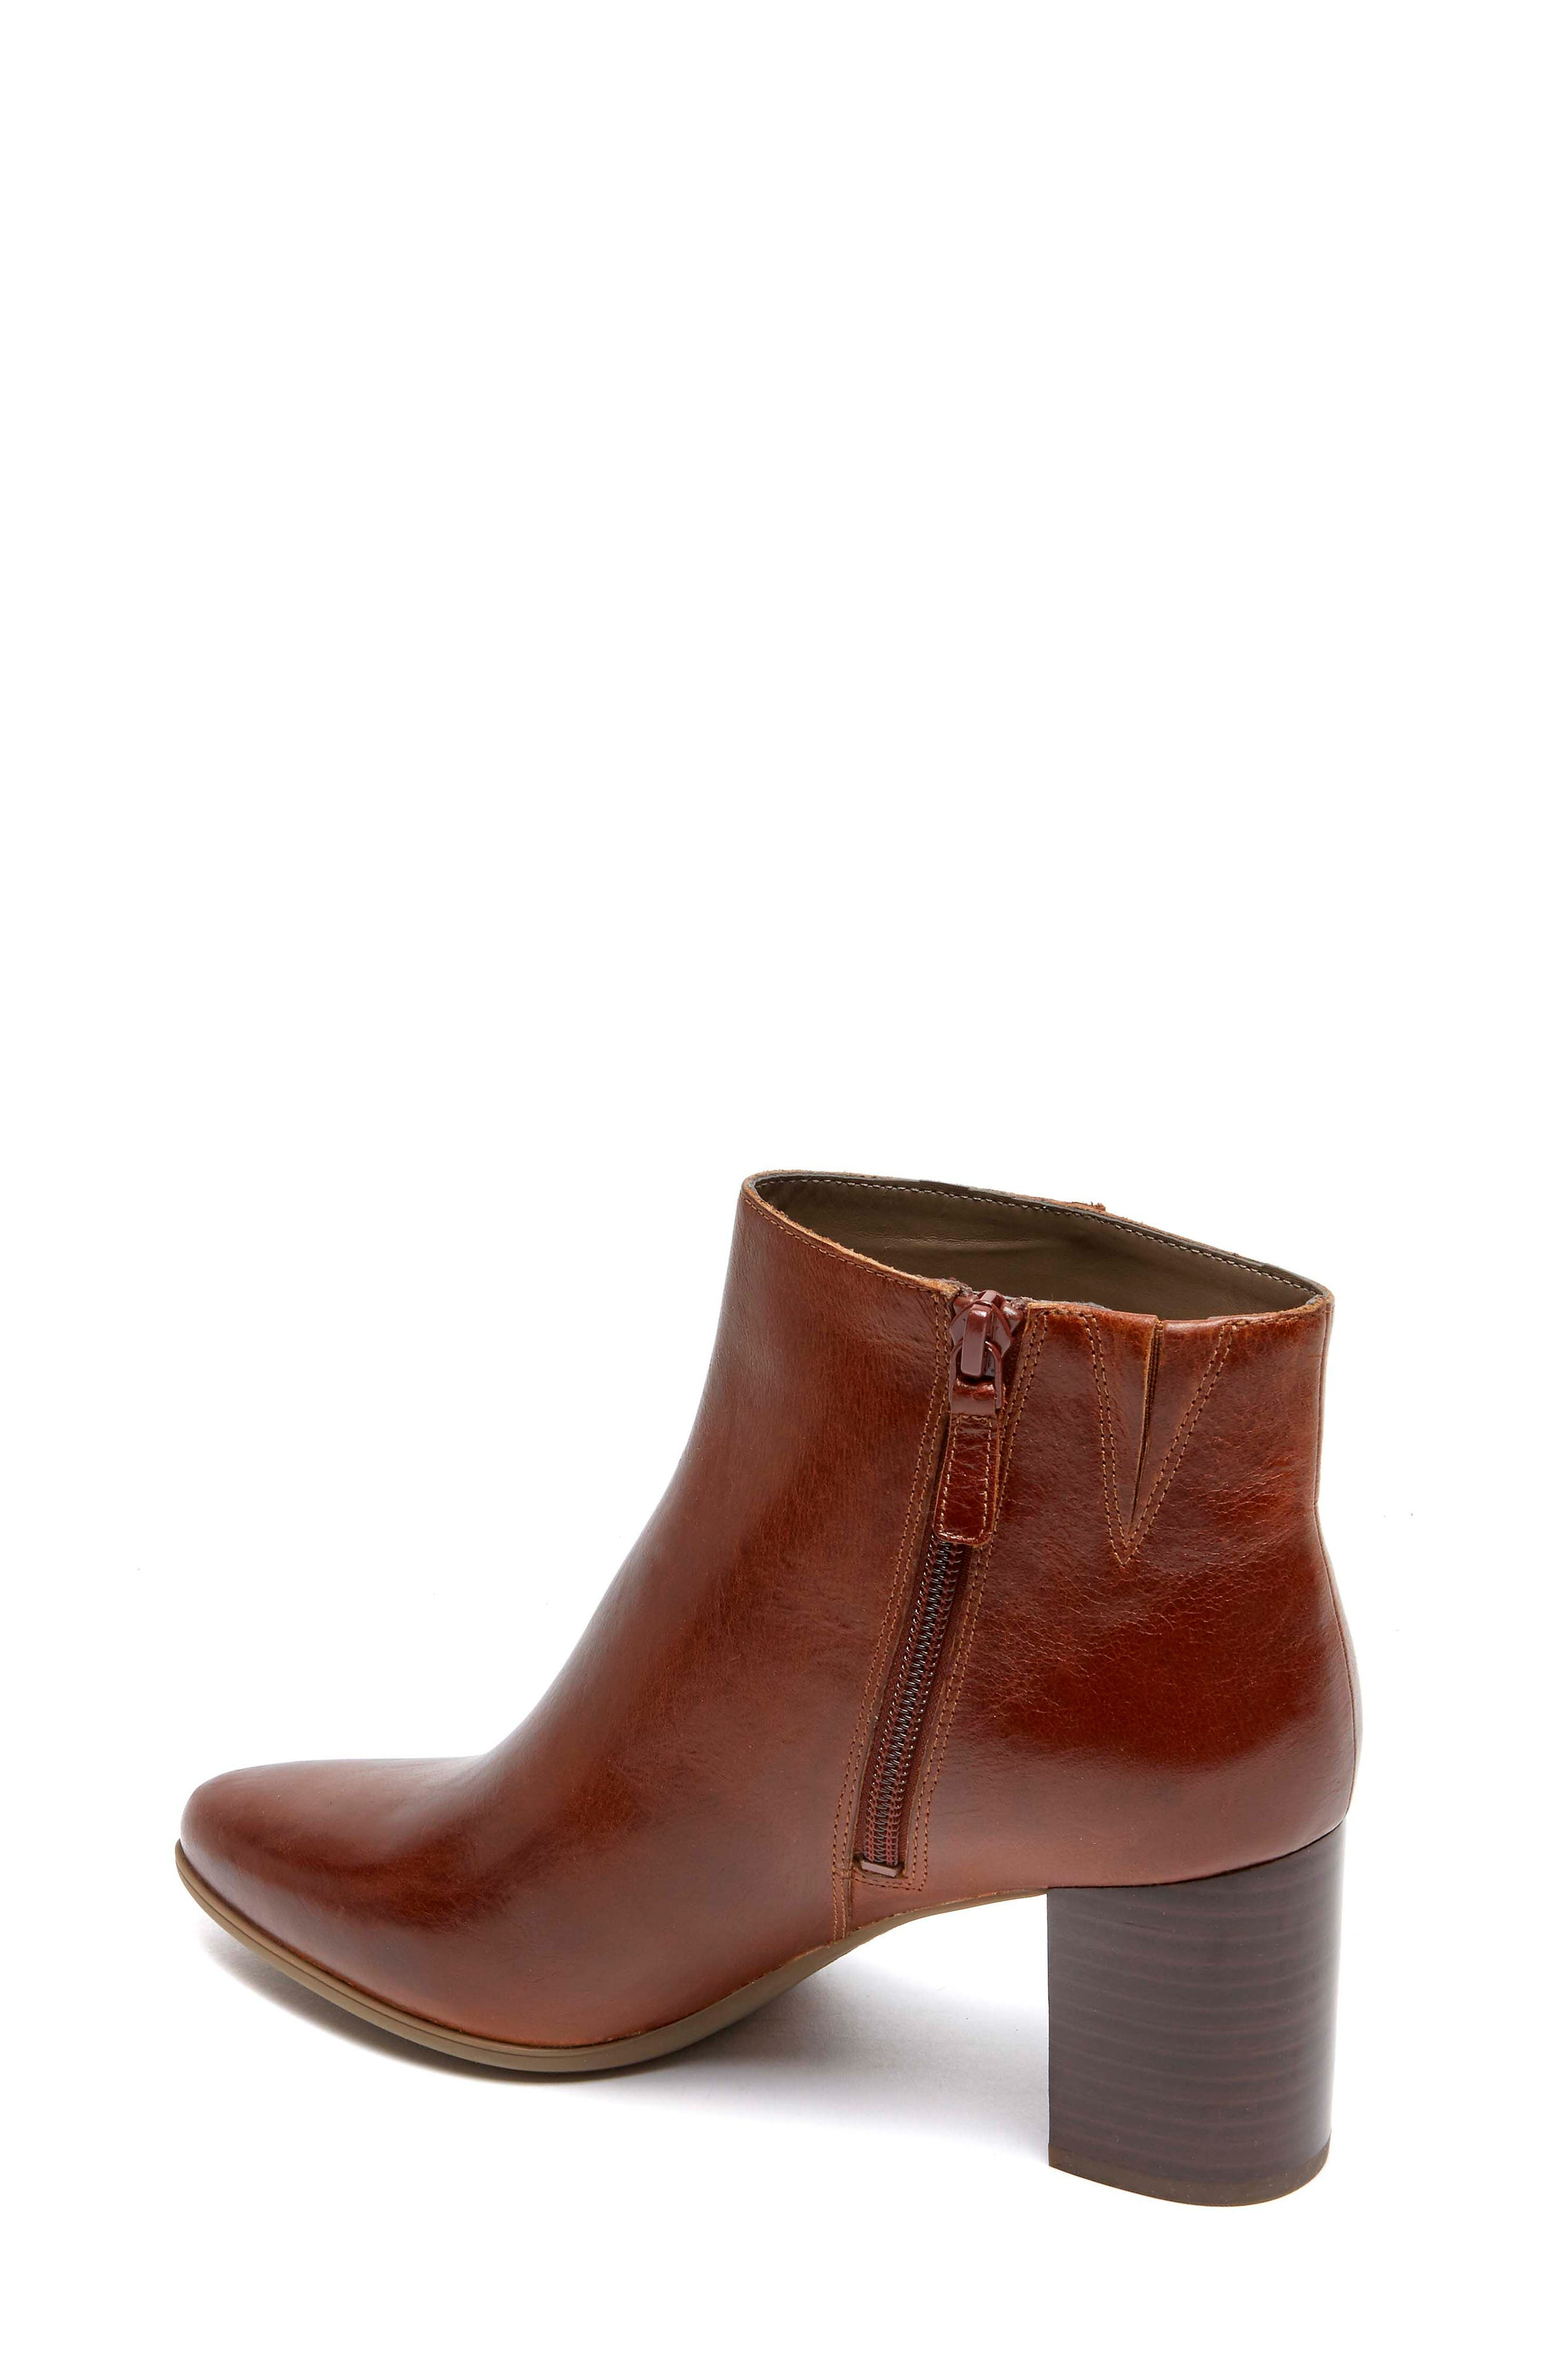 Lynix Luxe Bootie,                             Alternate thumbnail 2, color,                             Saddle Leather